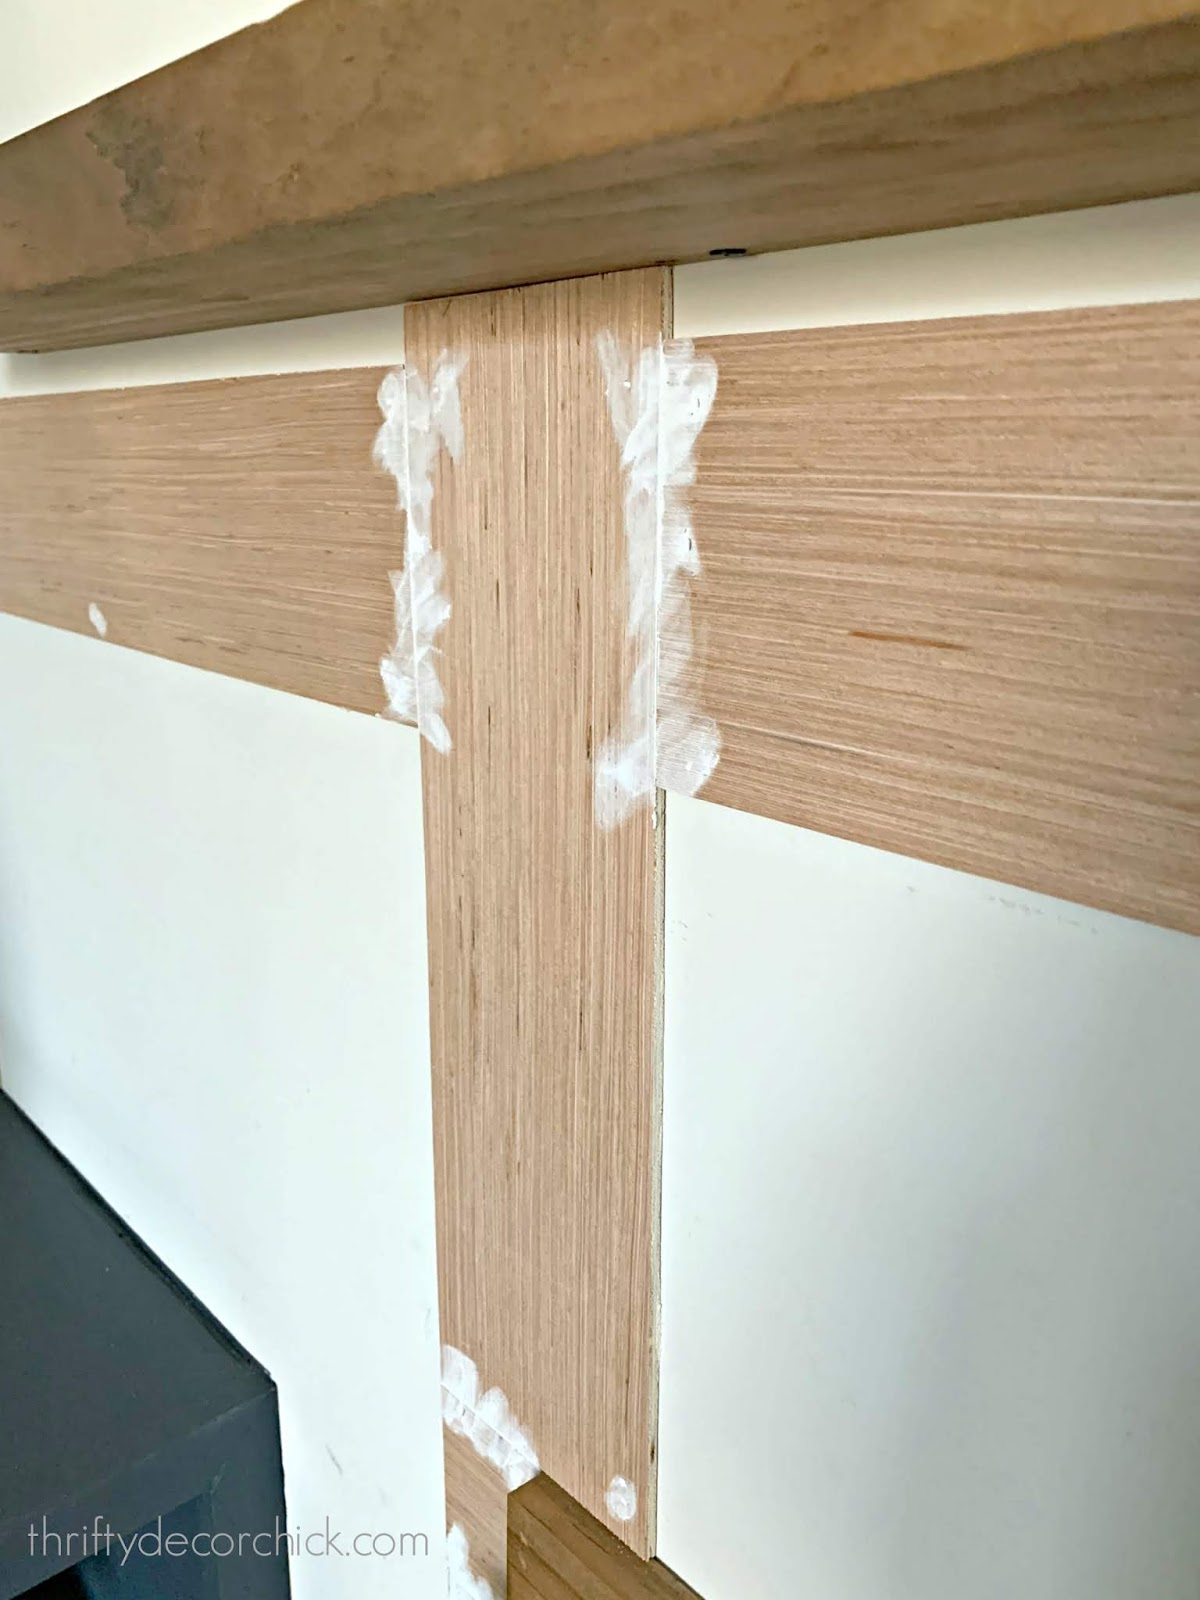 How to cover holes and seams on trim work